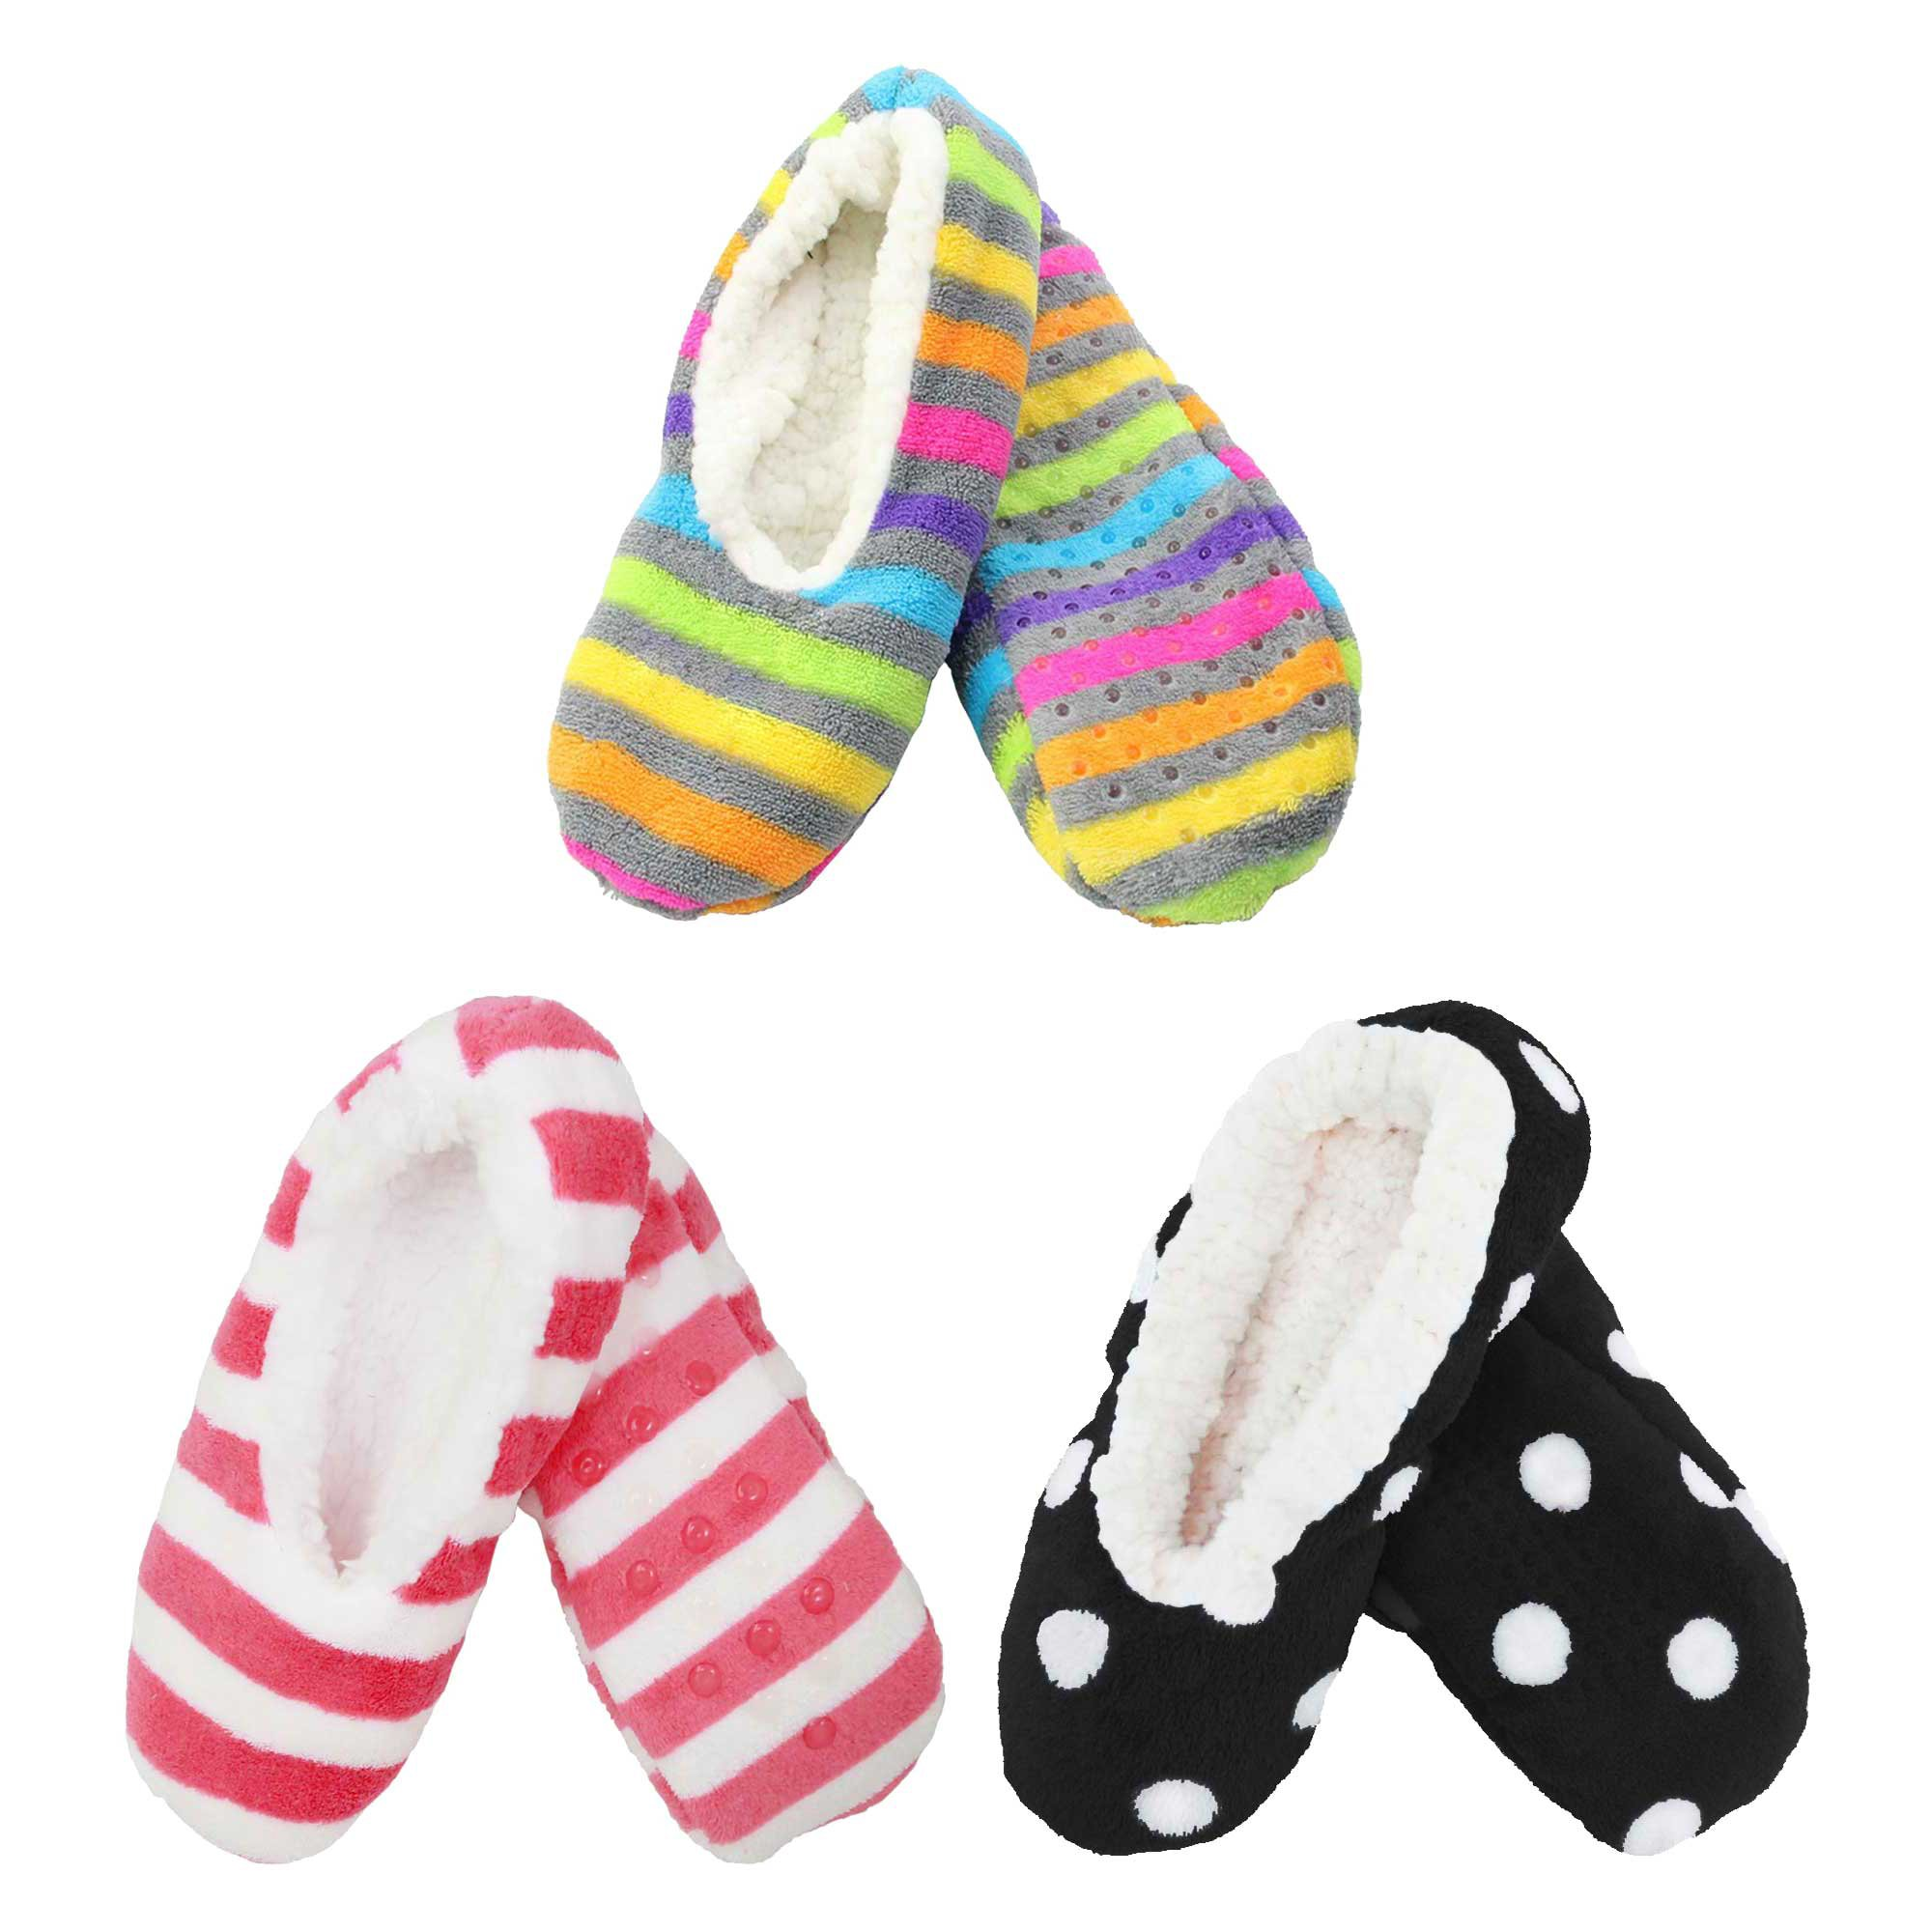 3 Pairs Adult Size Large Super Soft Warm Cozy Fuzzy Slippers Non-Slip Lined Socks, Assortment N17